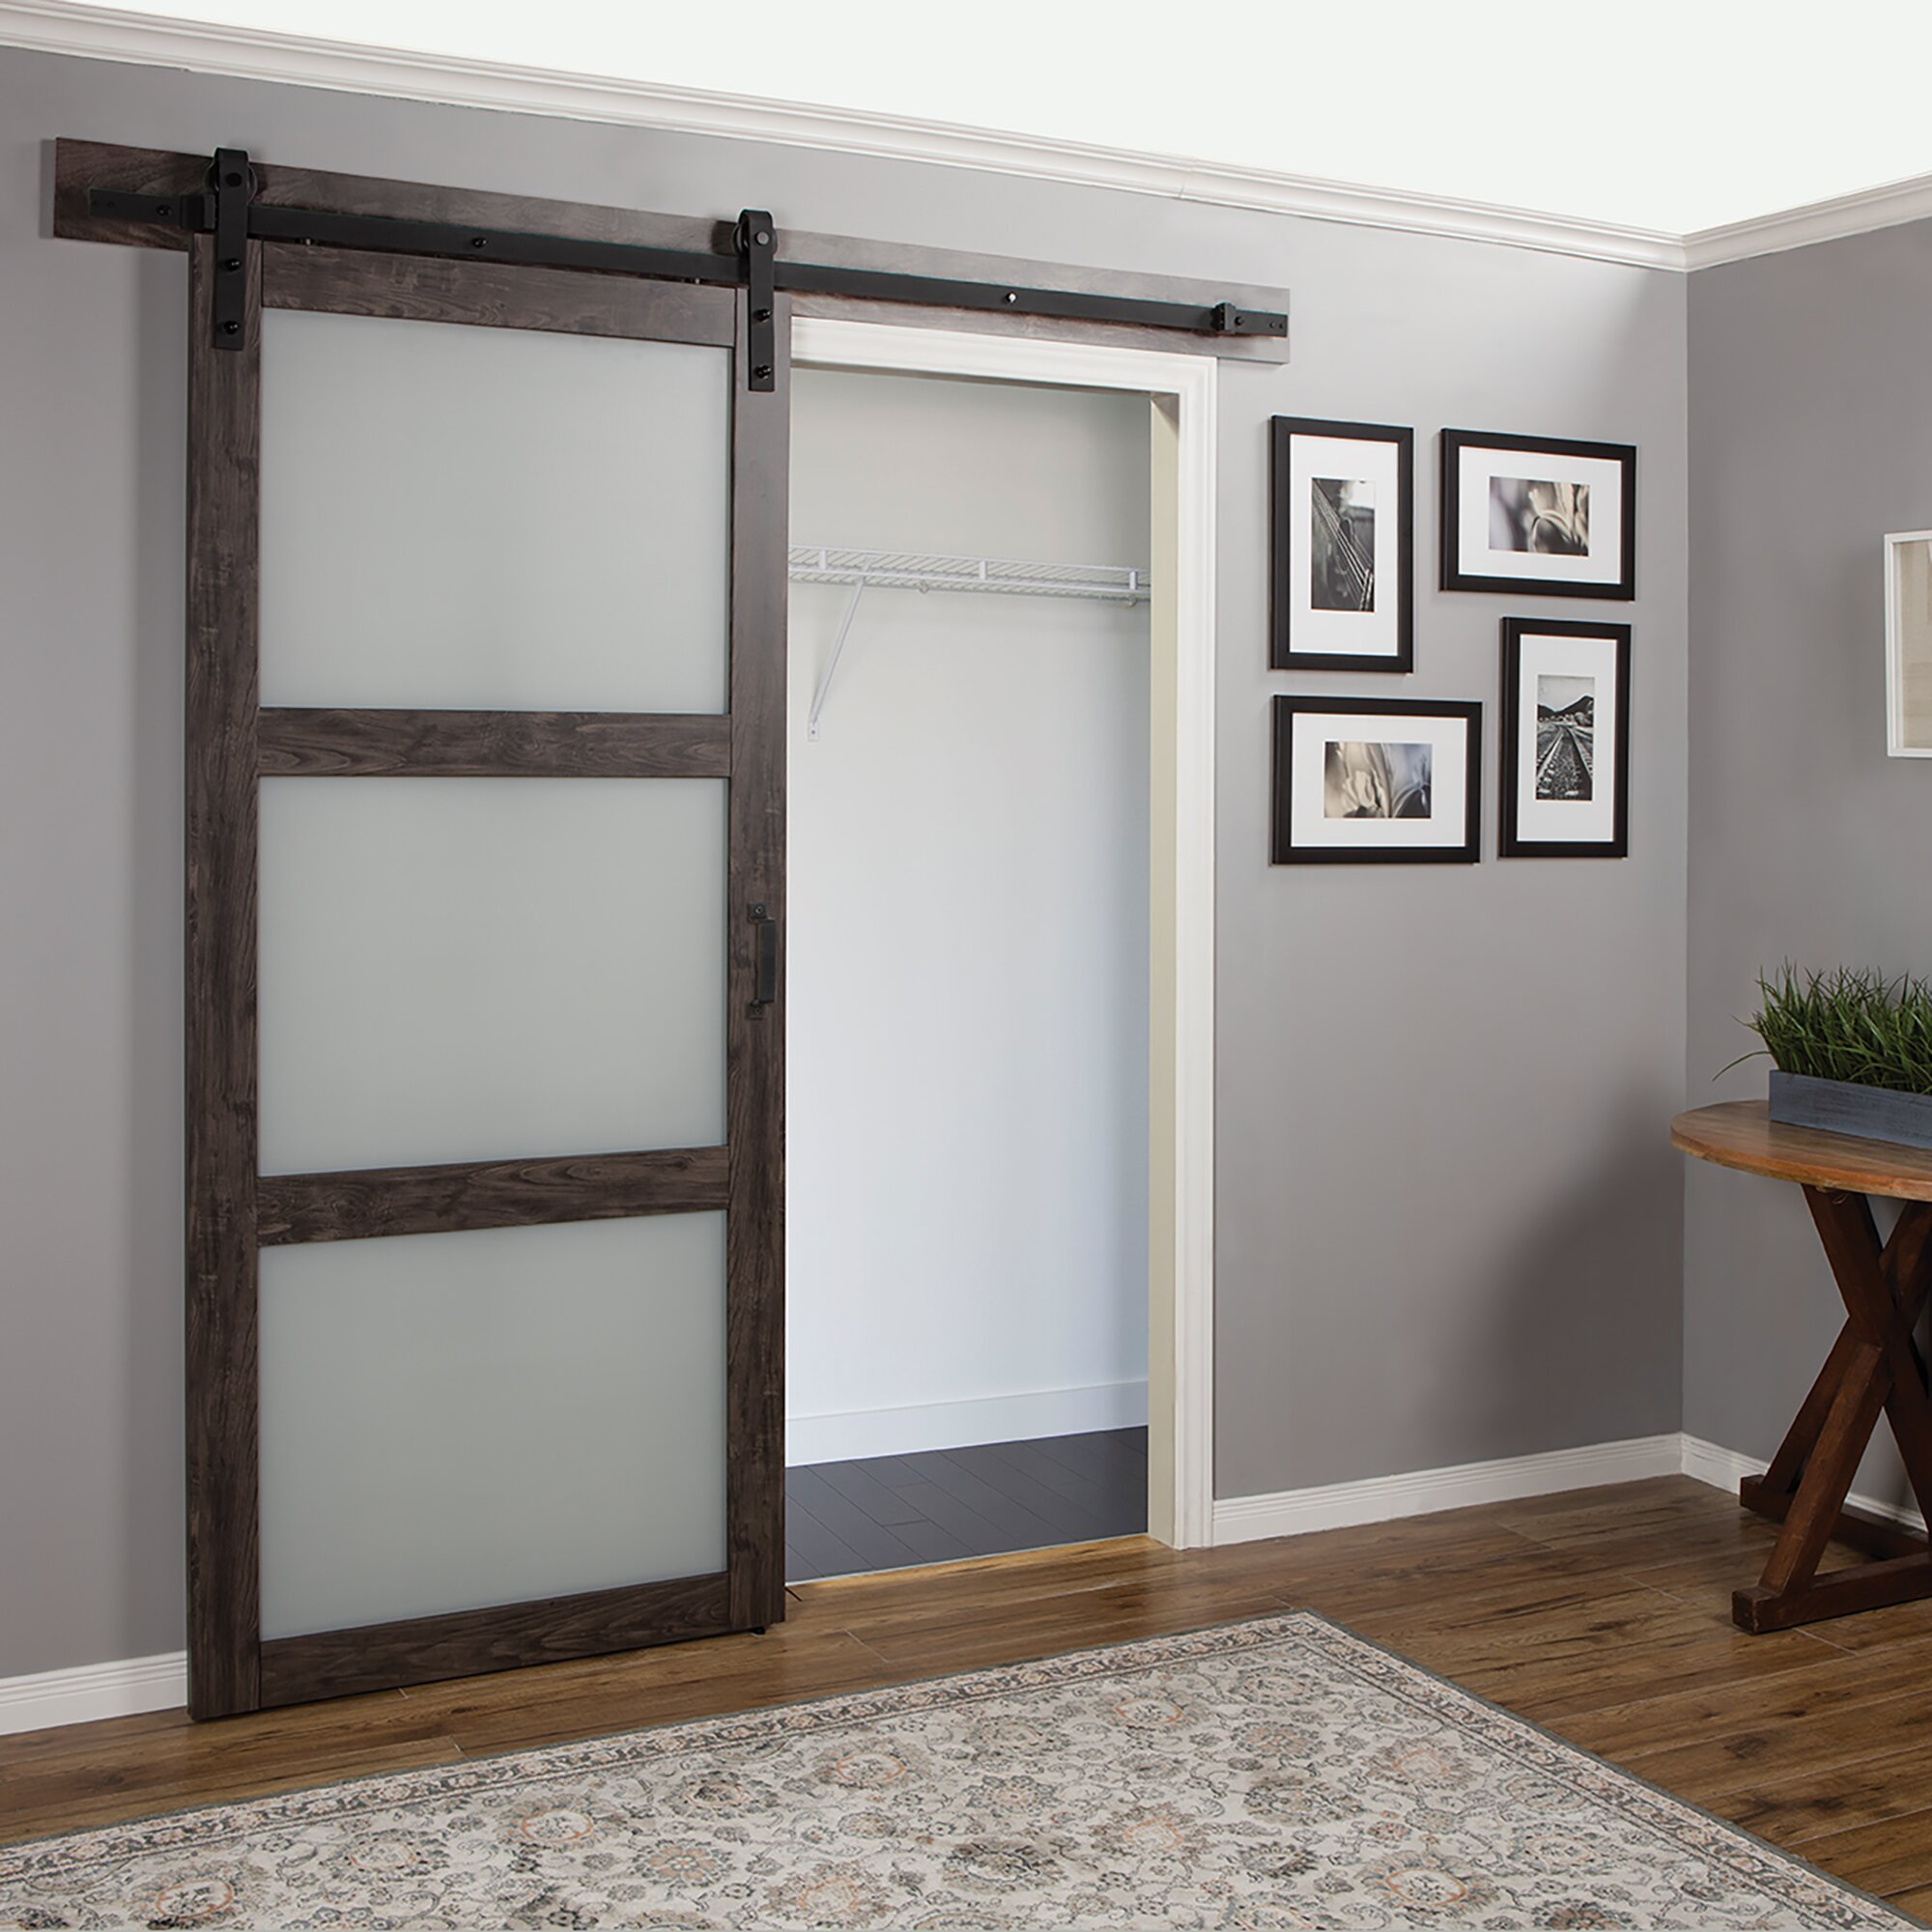 continental frosted glass 1 panel ironage laminate interior barn door - Erias Home Designs